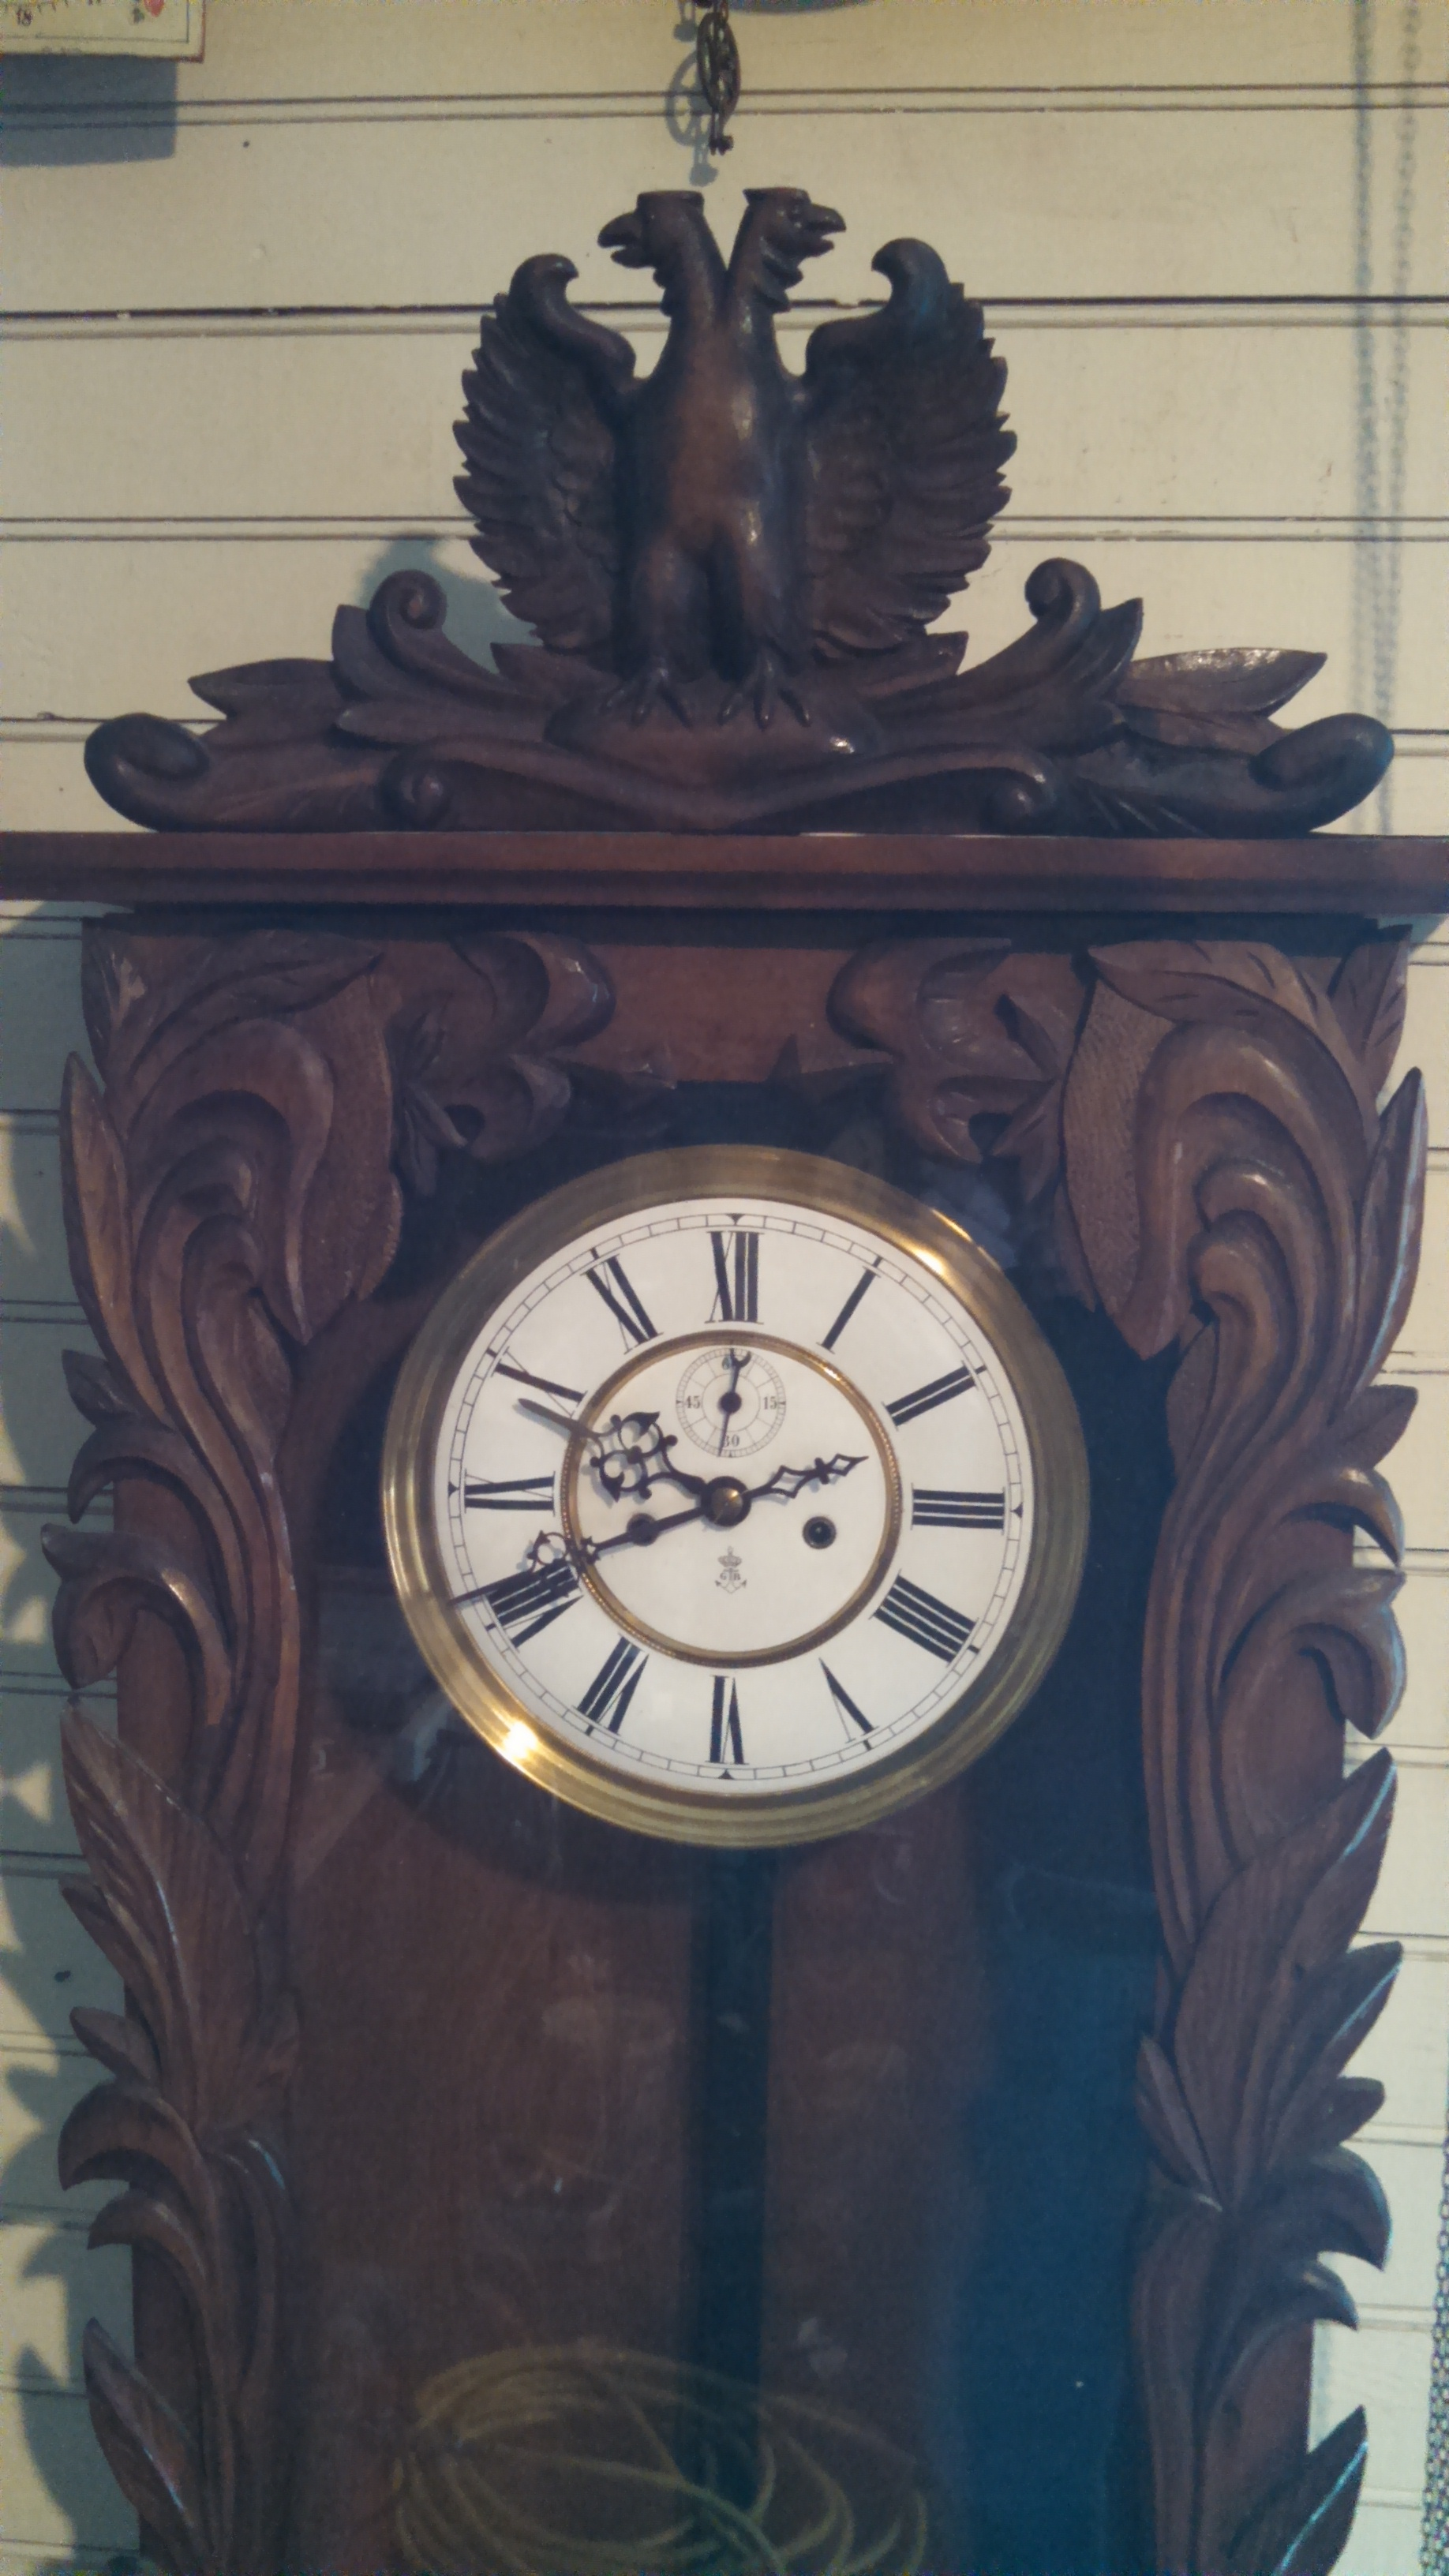 Gustav becker vienna regulator wall clock for sale antiques gustav becker vienna regulator wall clock for sale amipublicfo Image collections